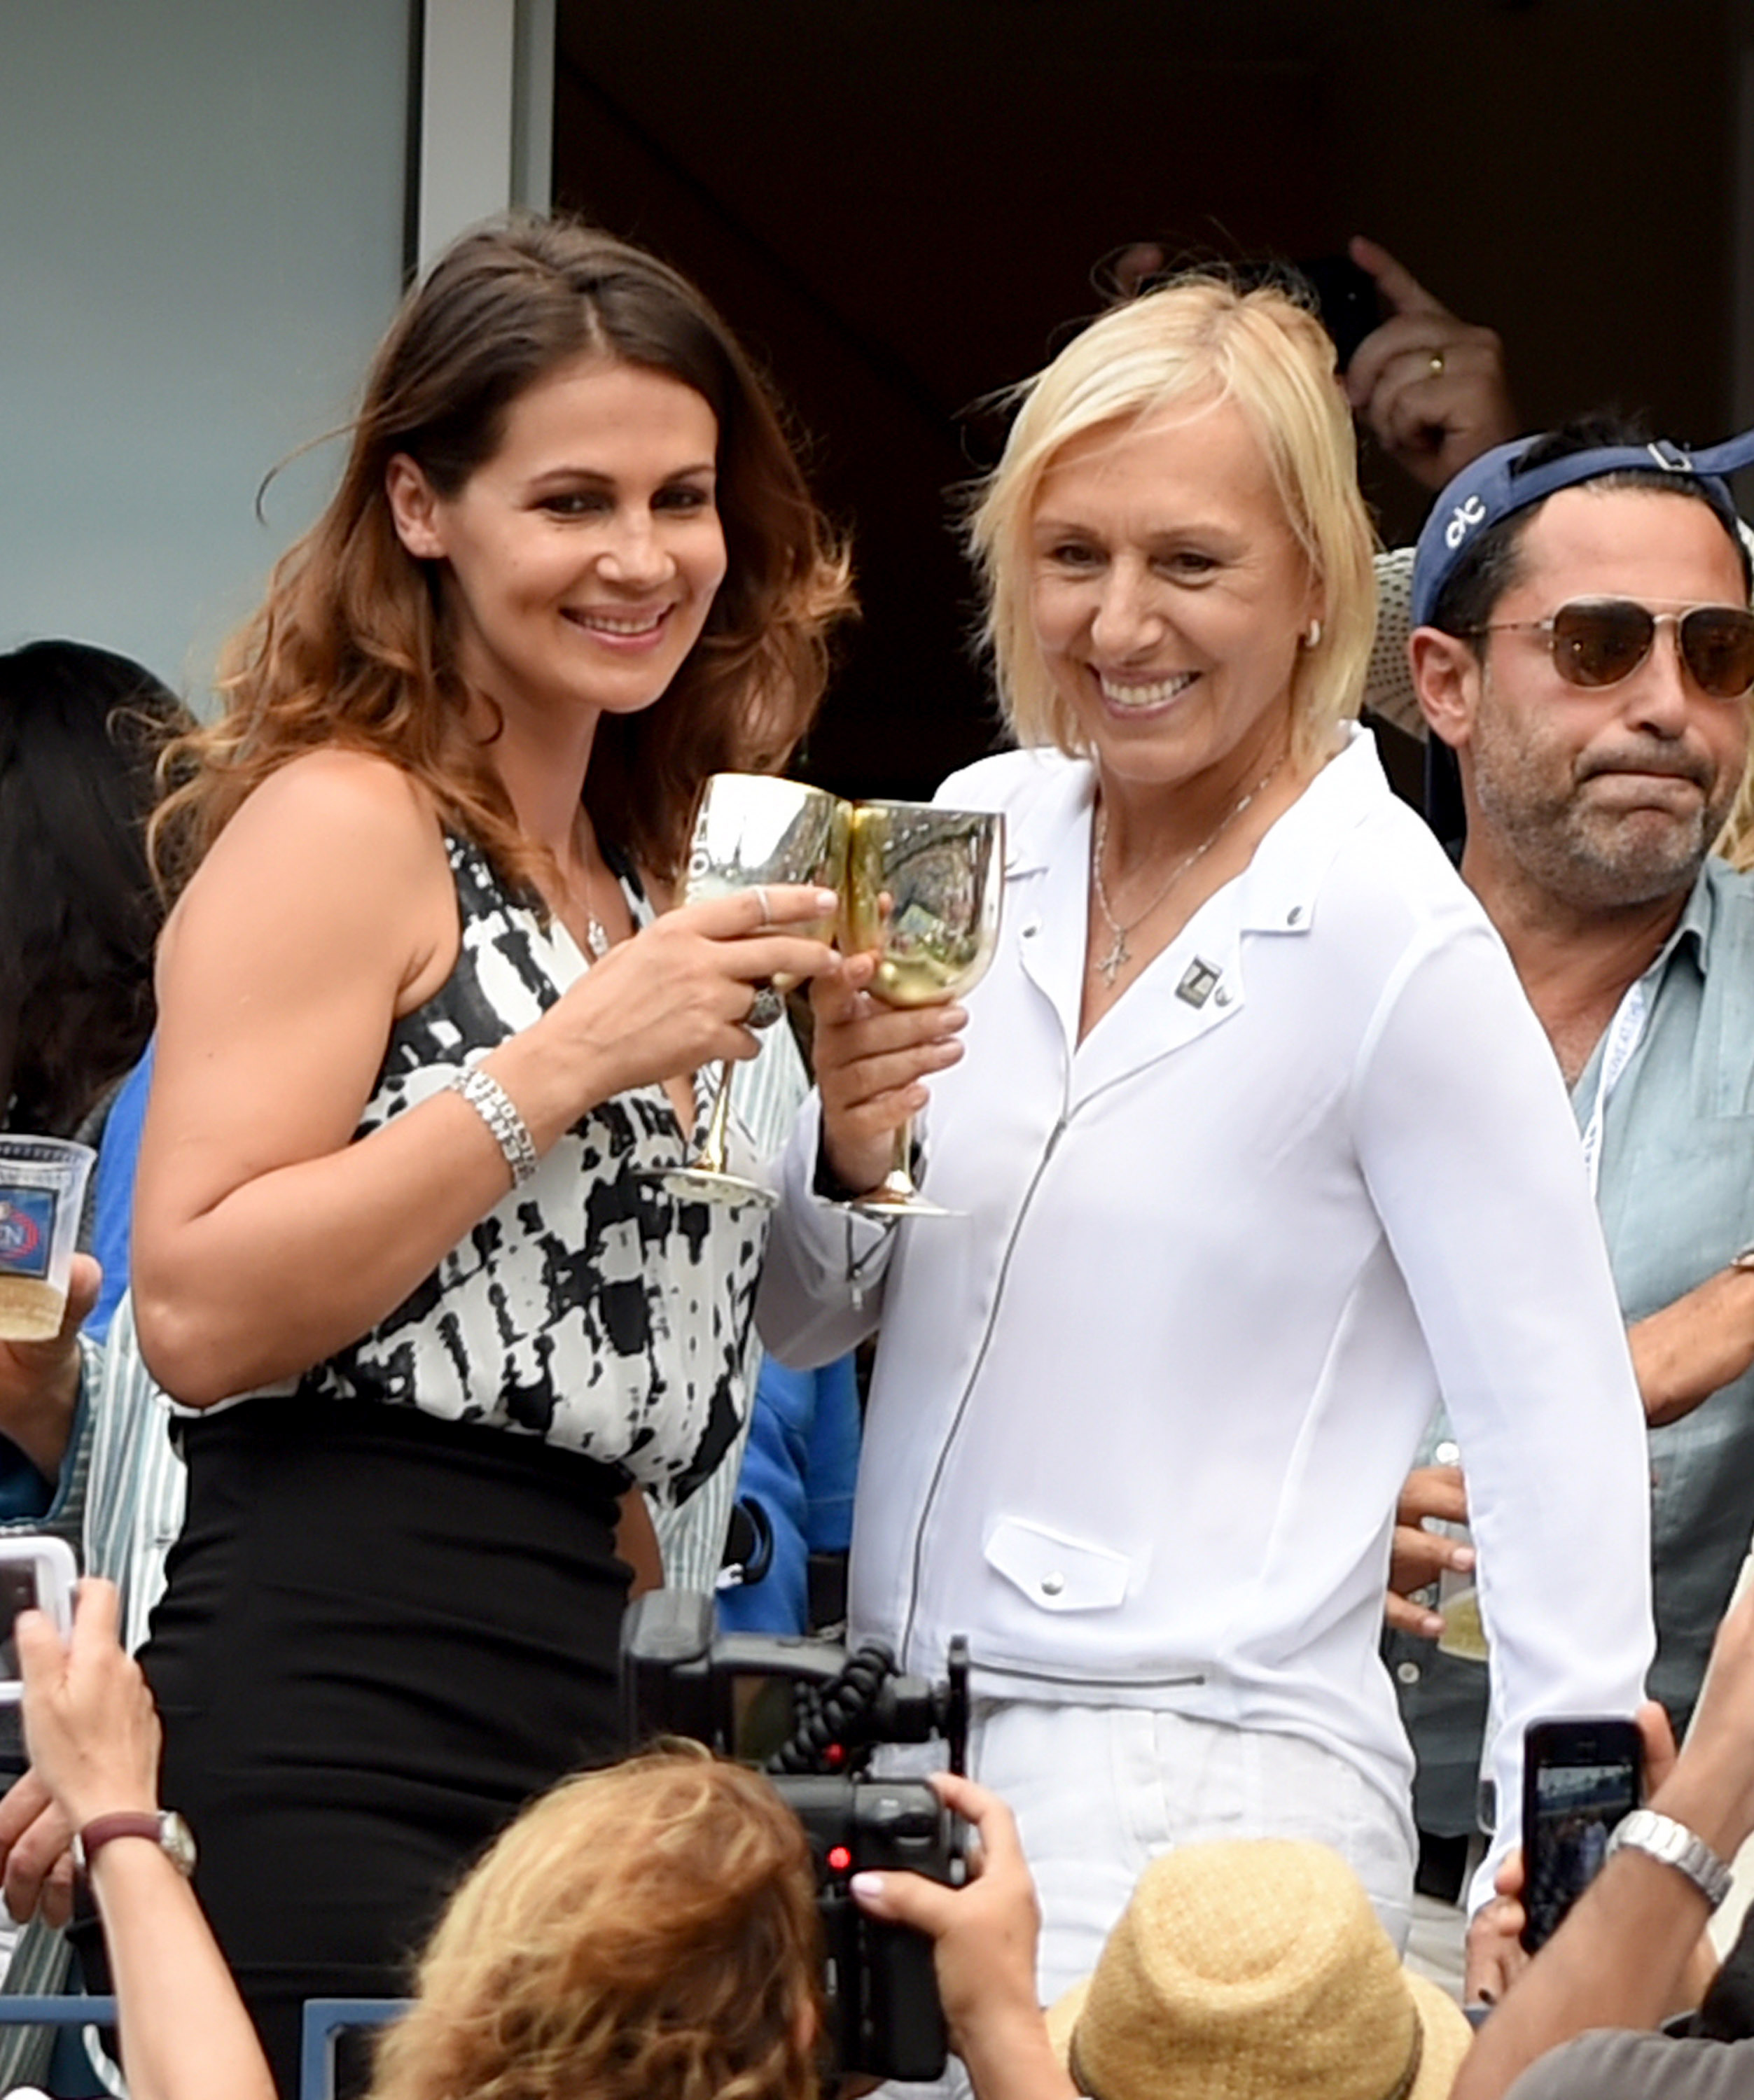 Martina Navratilova, right, and Julia Lemigova celebrate their engagement during the 2014 U.S. Open in New York City on Sept. 6, 2014